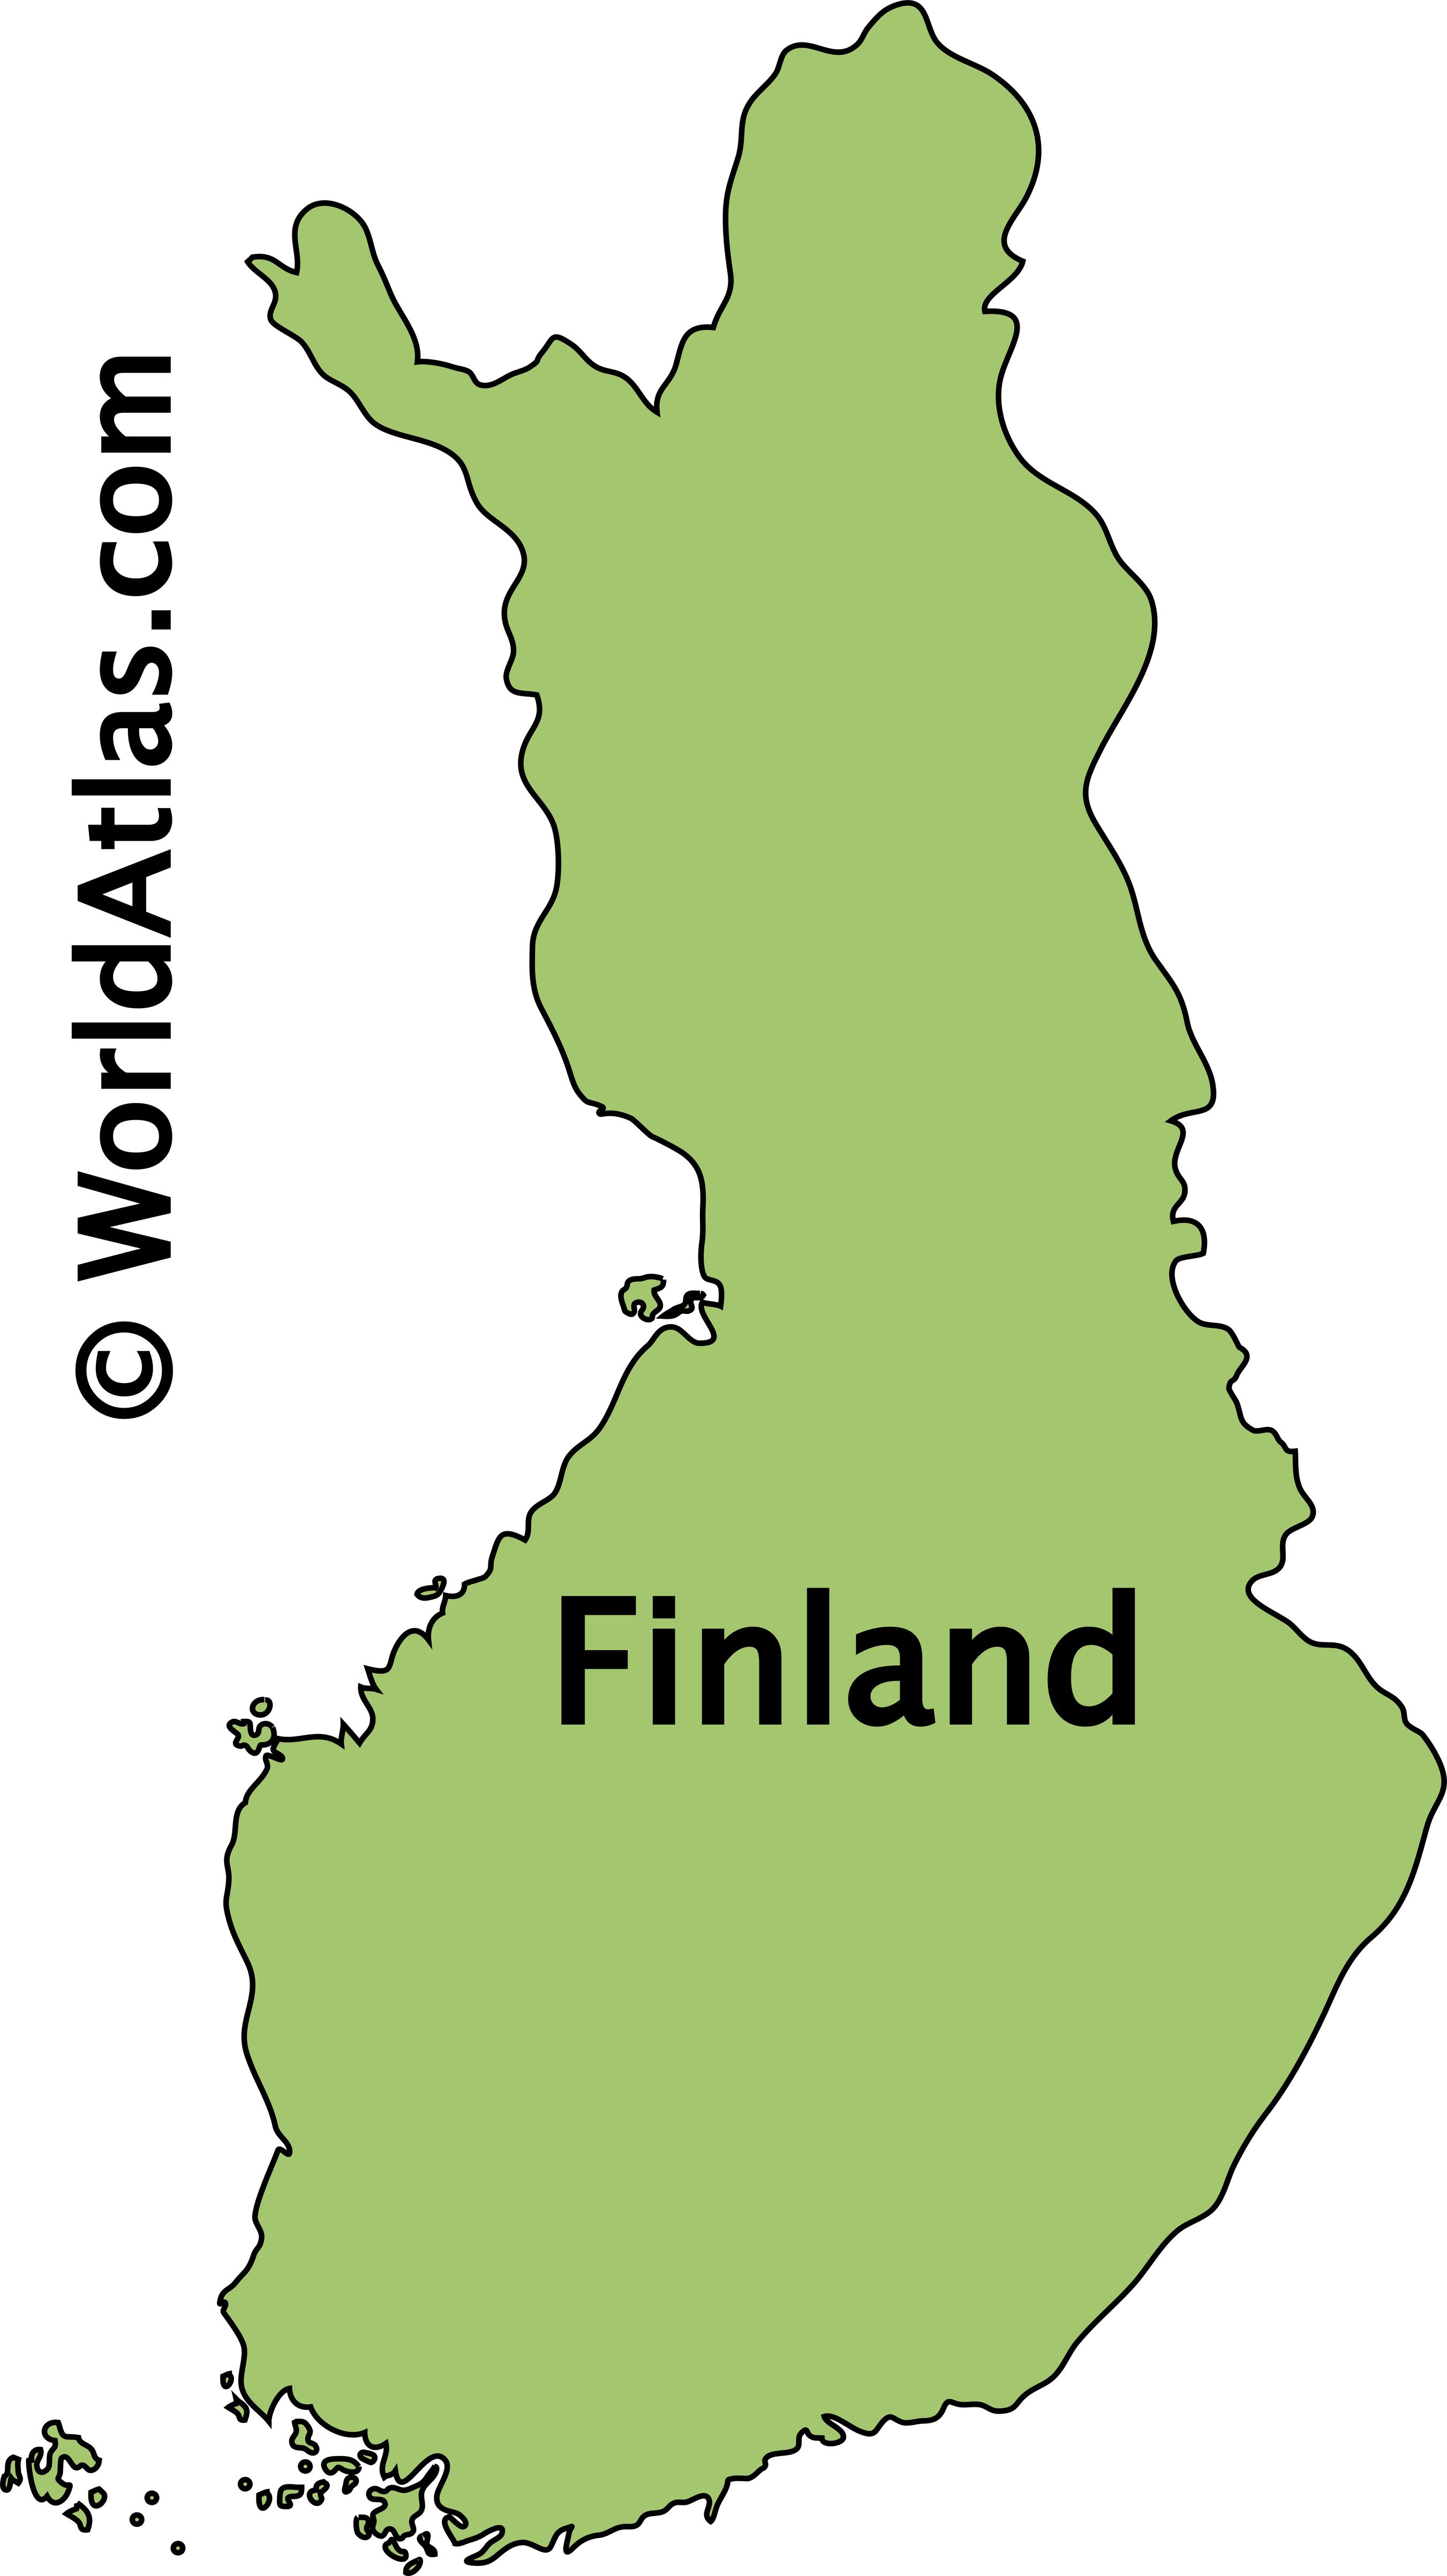 Outline Map of Finland